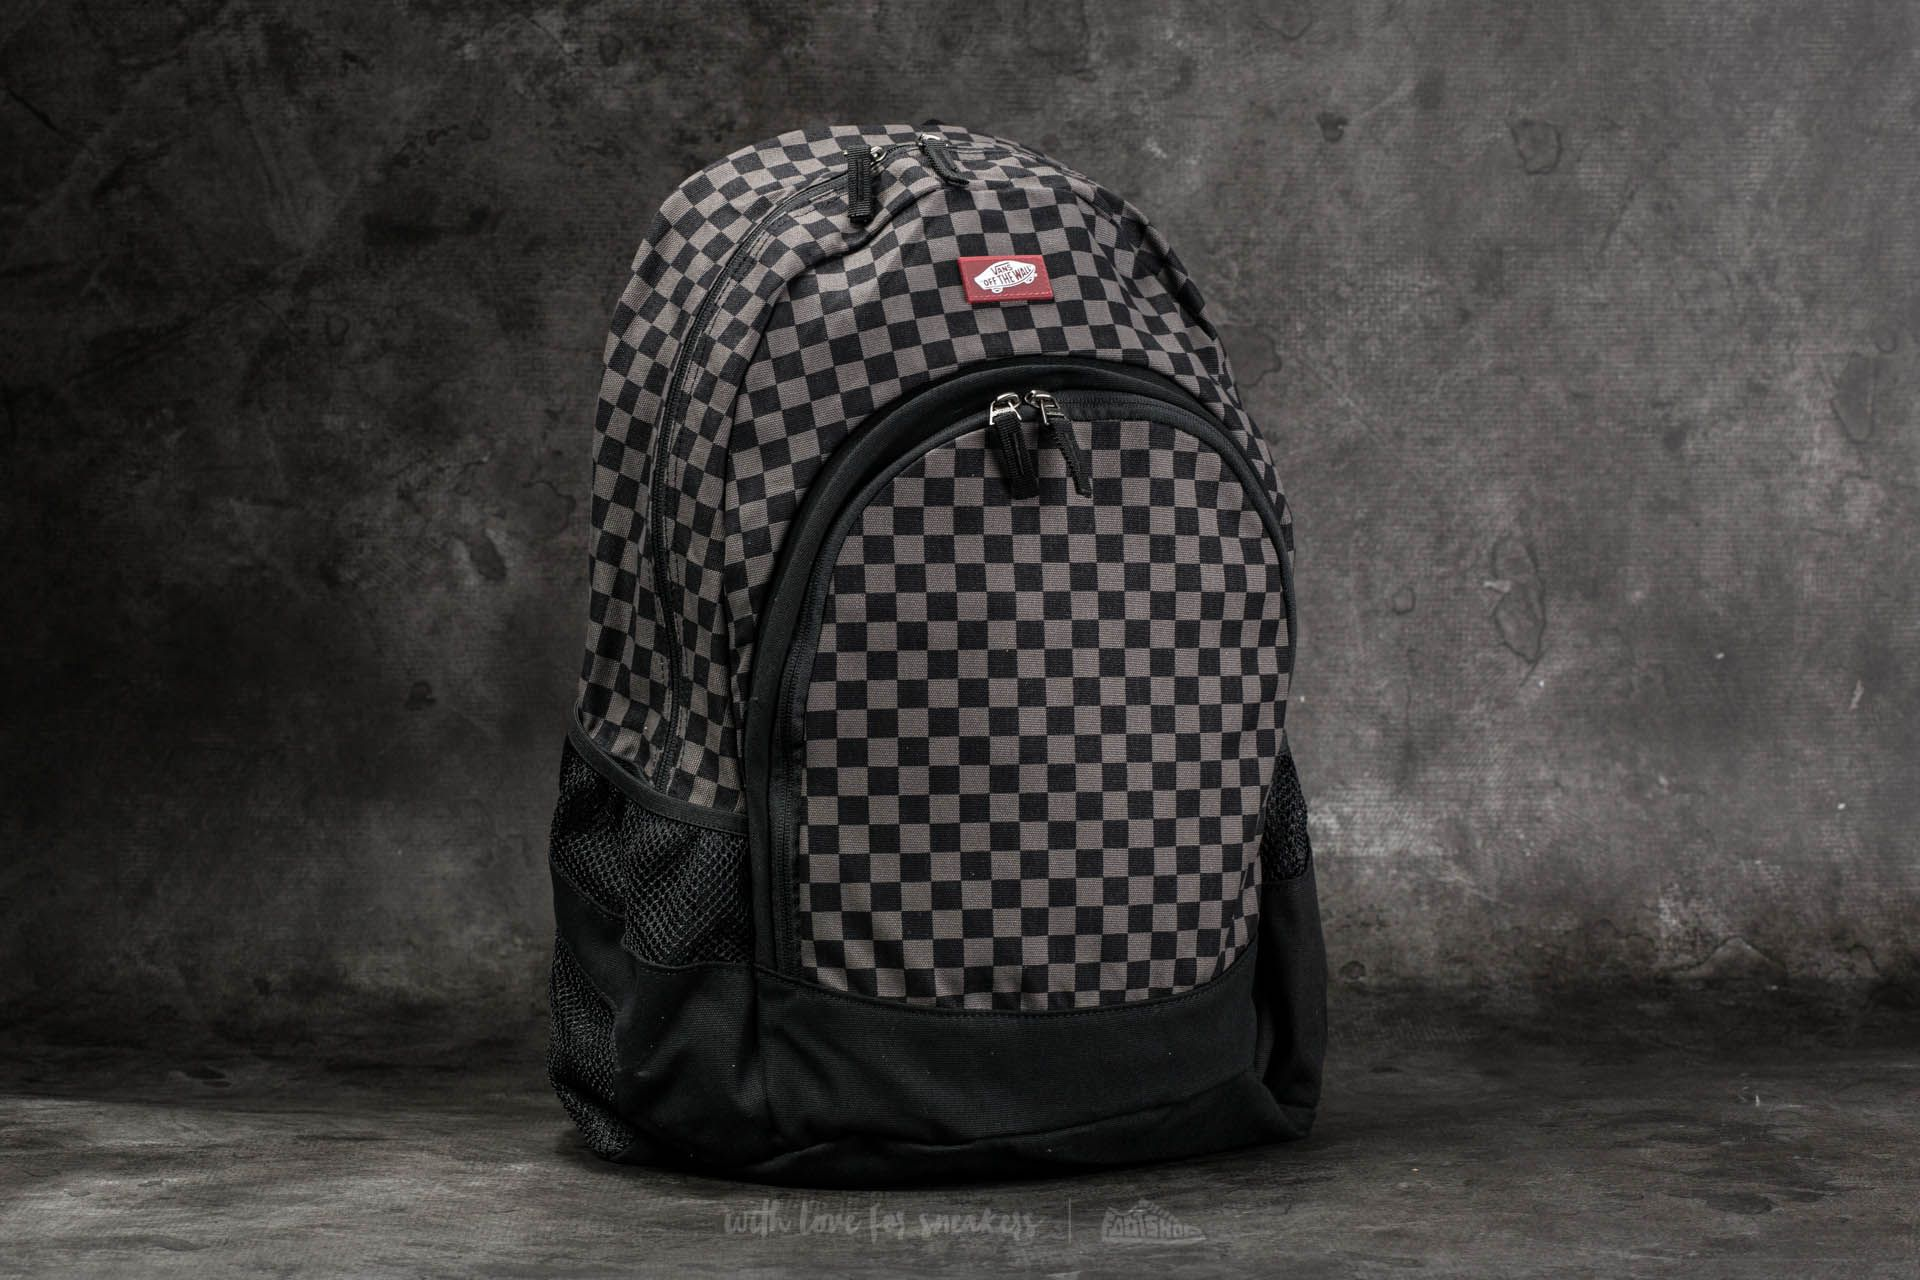 e0a793176a Vans VAN DOREN BACKPACK Black Charcoal